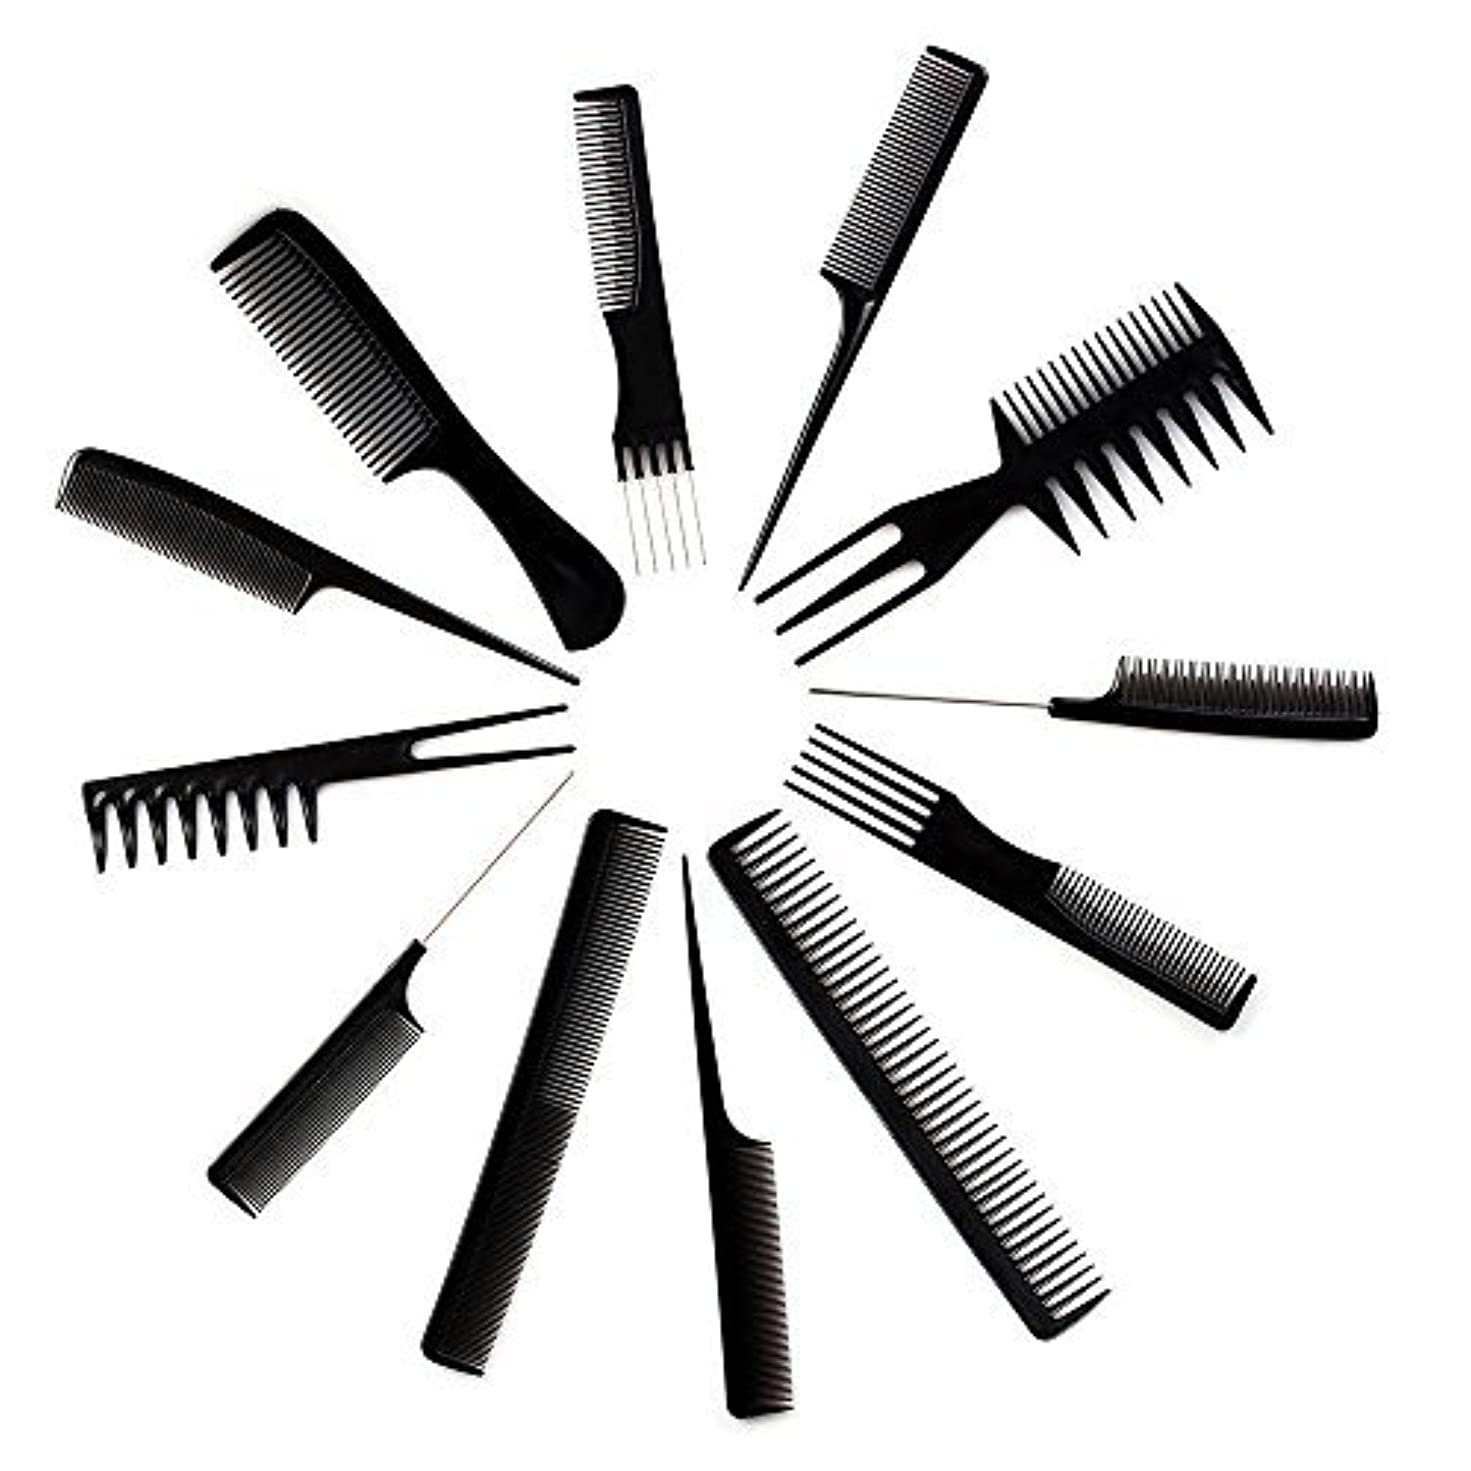 ドキドキ安全でない安西10pcs Black Professional Combs Hairdressing Hair Salon Styling Barbers Set Kit [並行輸入品]